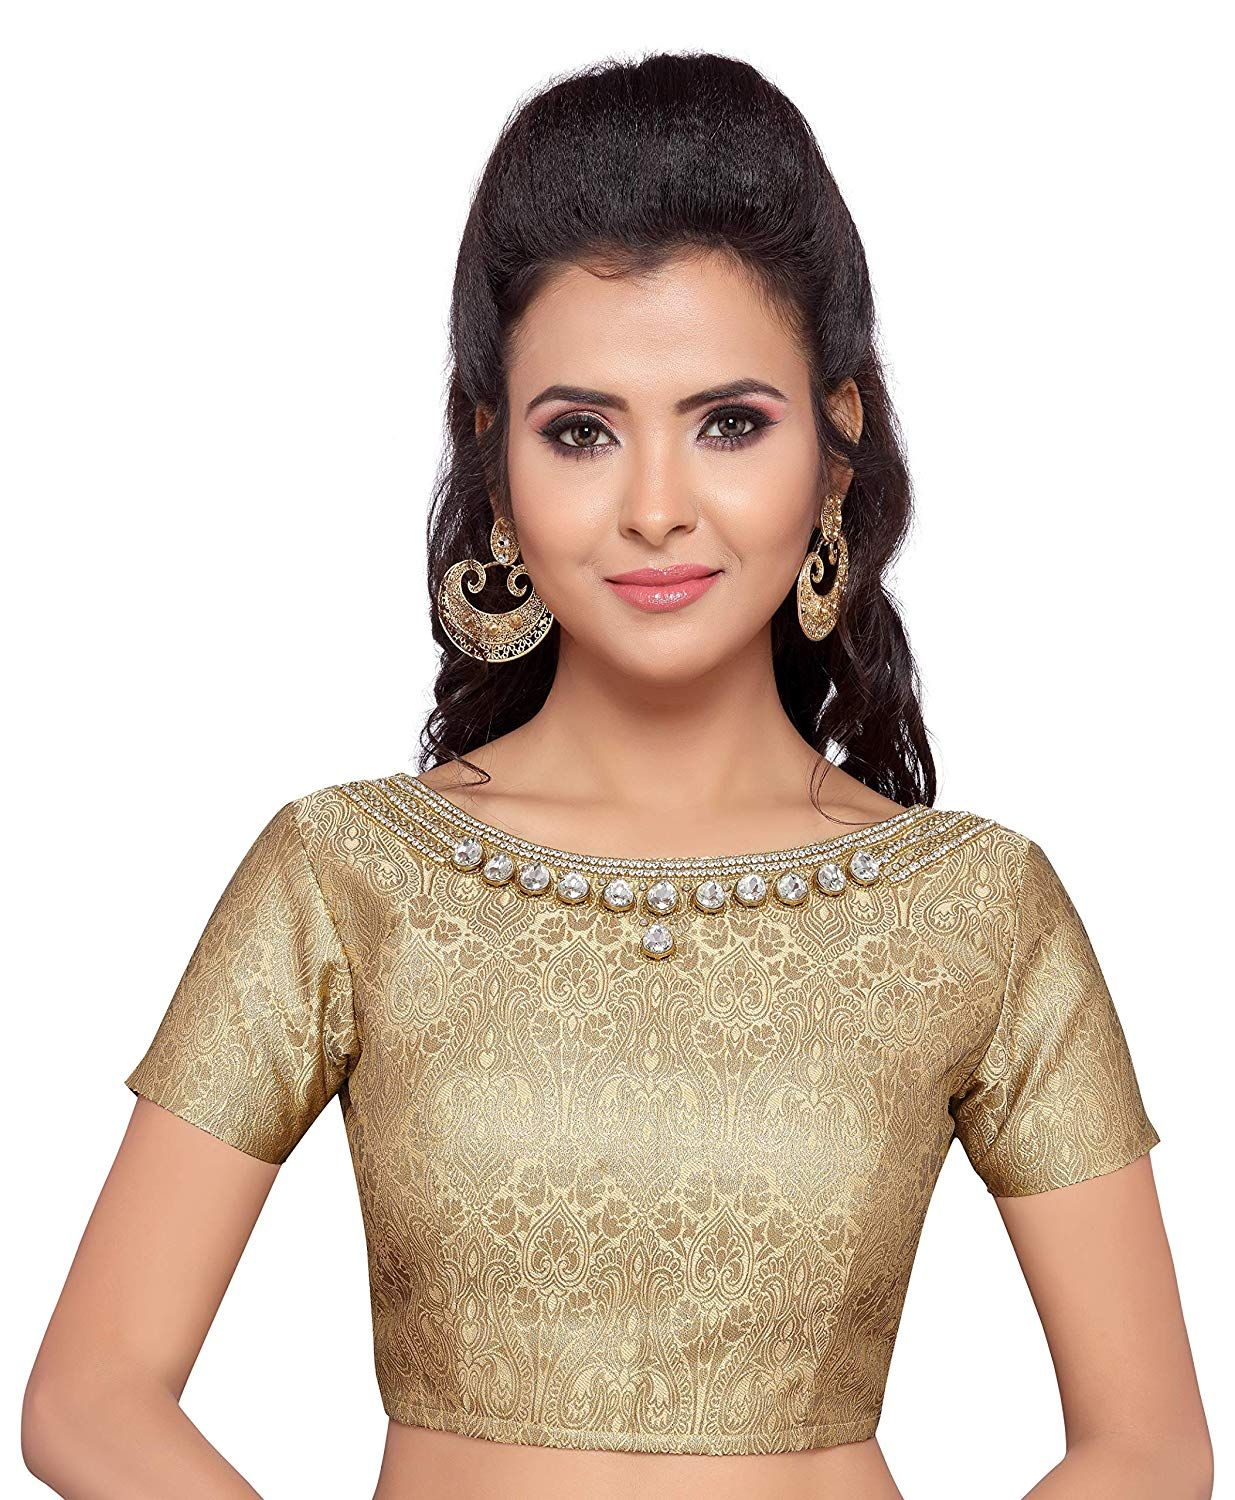 80b45f2d554959 STUDIO SHRINGAAR WOMEN'S GOLDEN BROCADE SAREE BLOUSE WITH STONEWORK  NECKLINE AND SHORT SLEEVES: Amazon.in: Clothing & Accessories